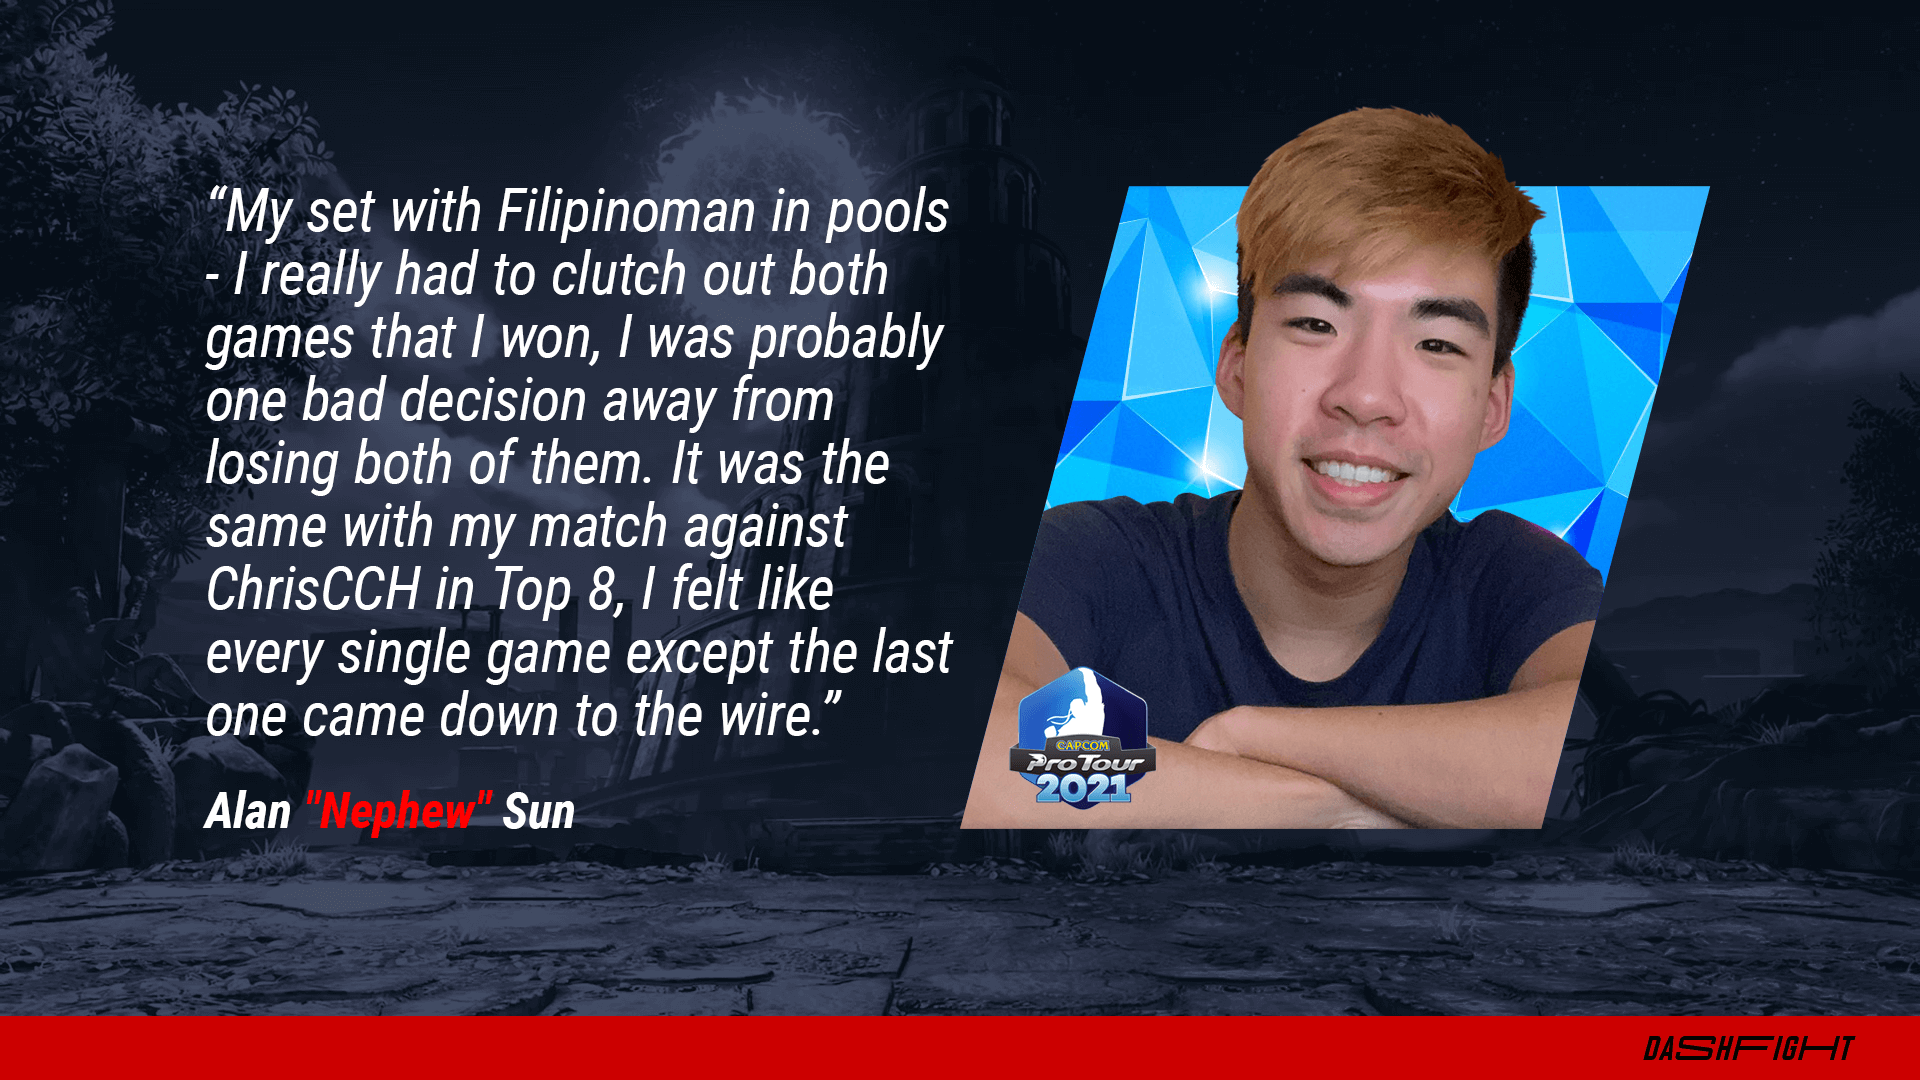 Street Fighter esports - DashFight interview with Nephew - quote image